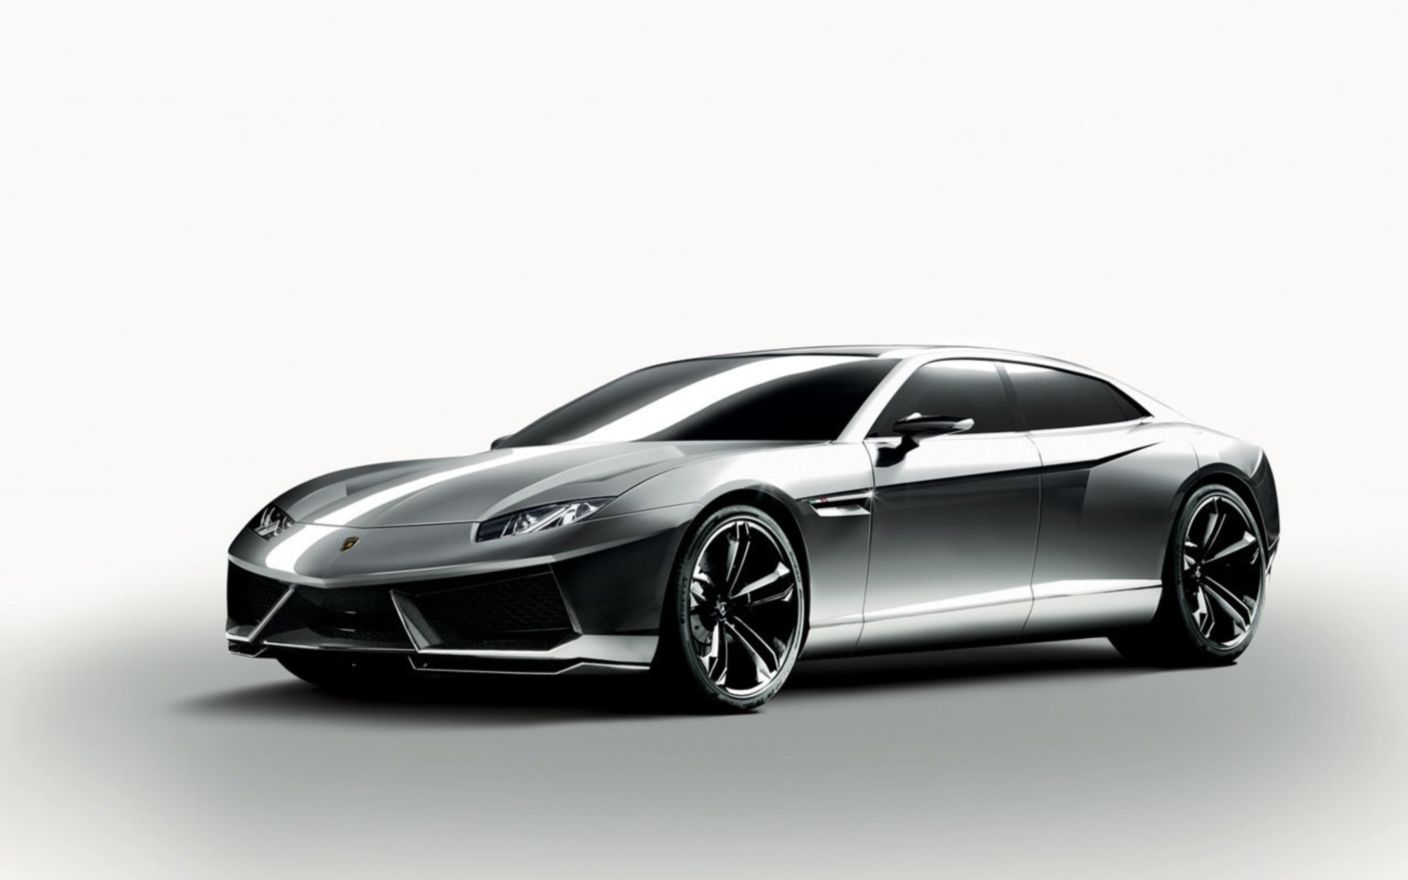 Download free HD Lamborghini Estoque Concept Wide Wide Wallpaper, image